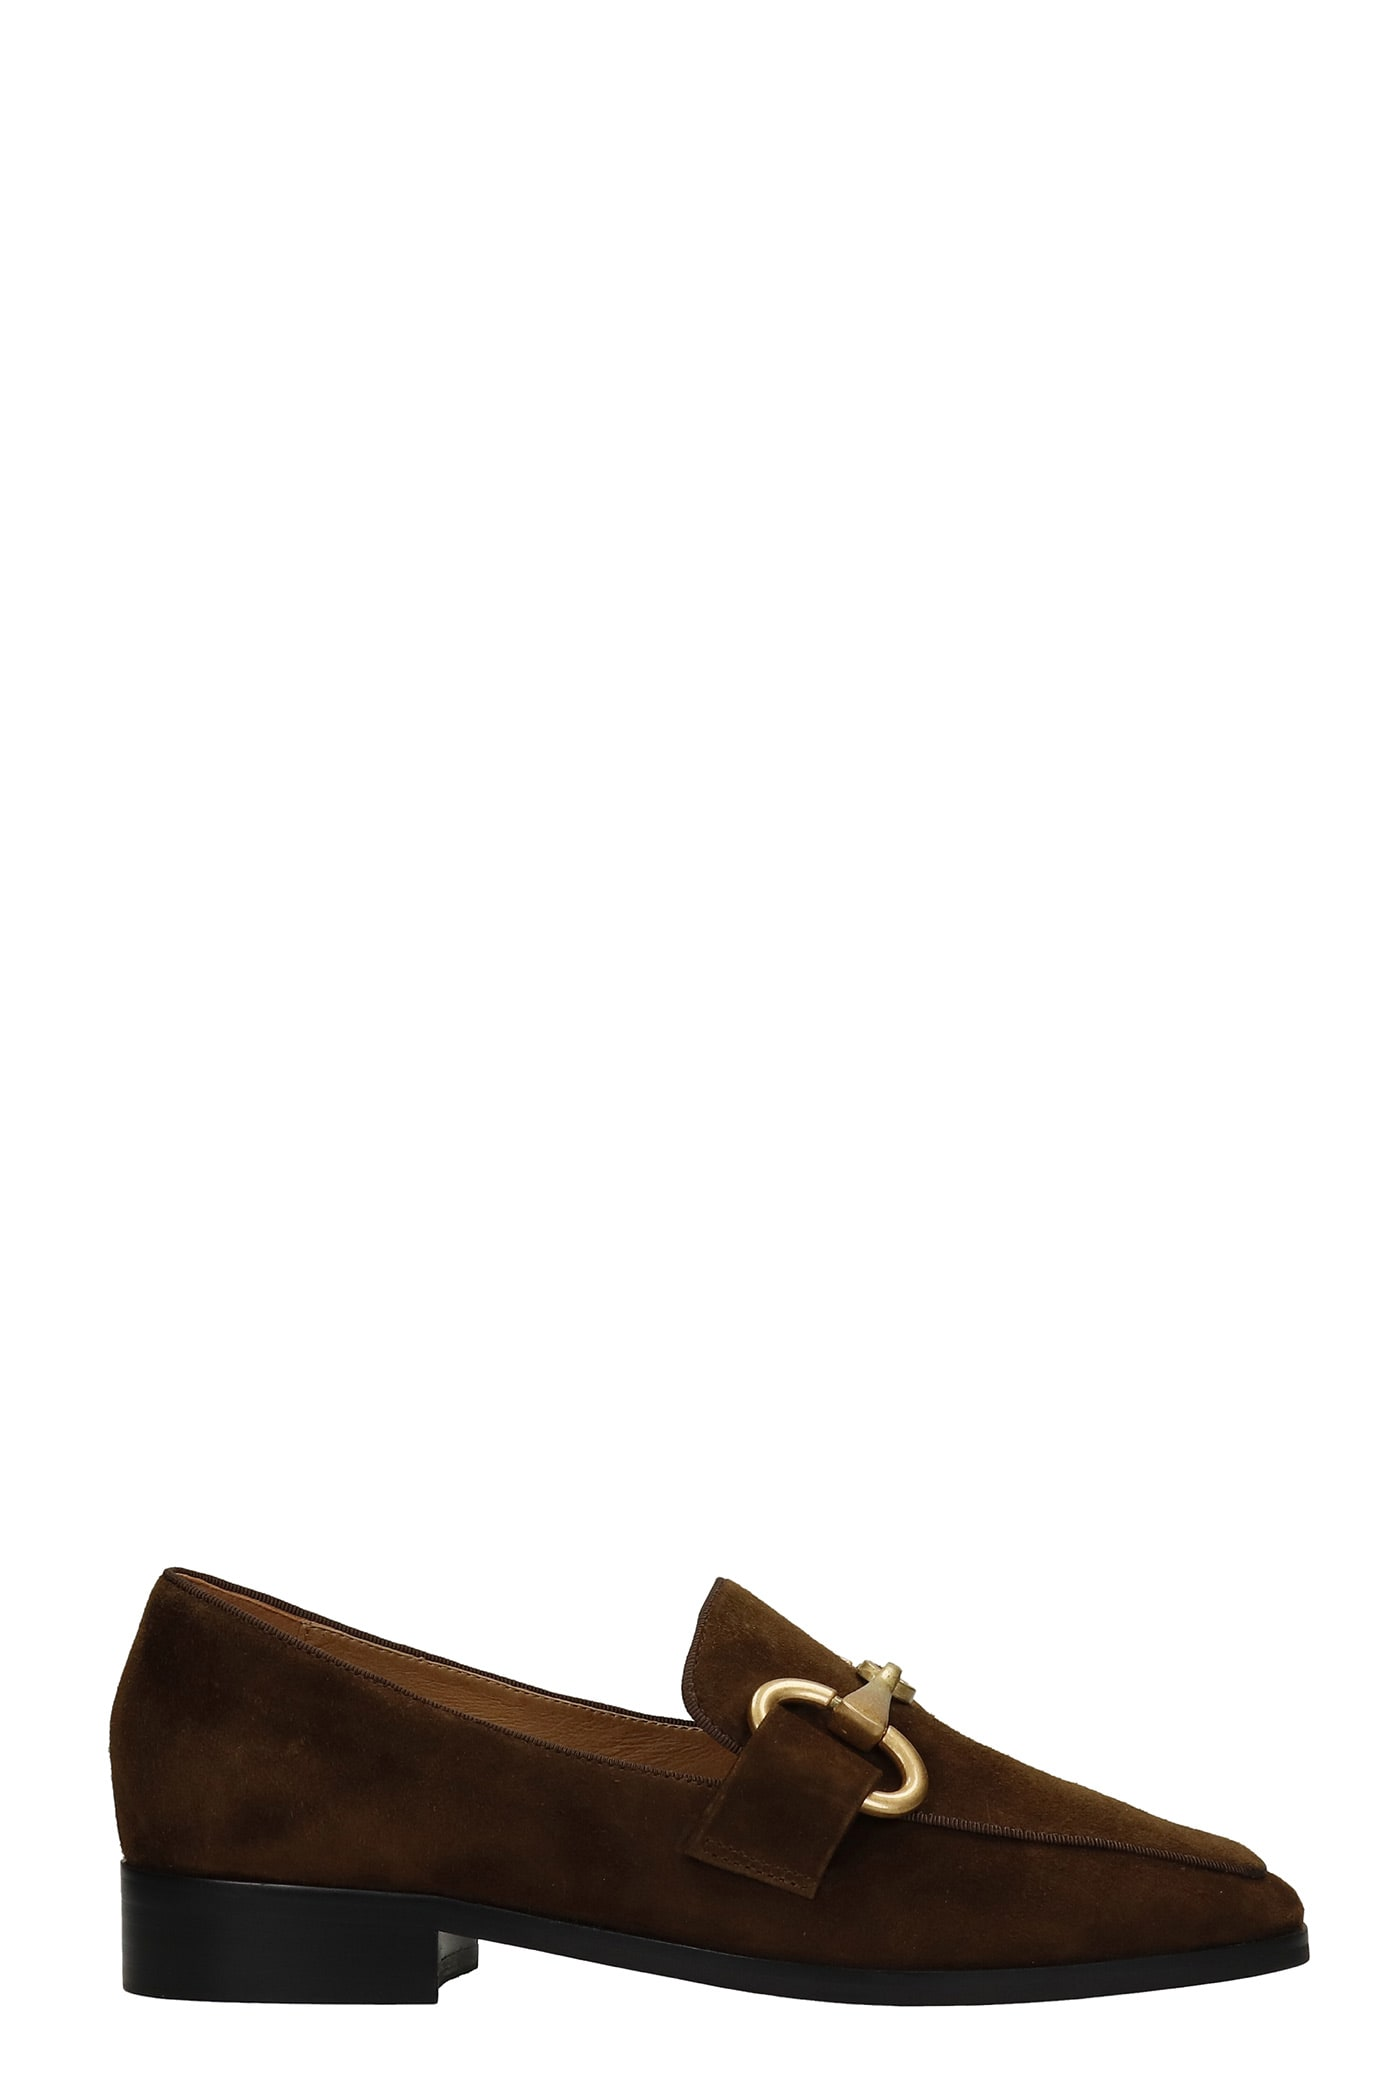 Loafers In Brown Suede